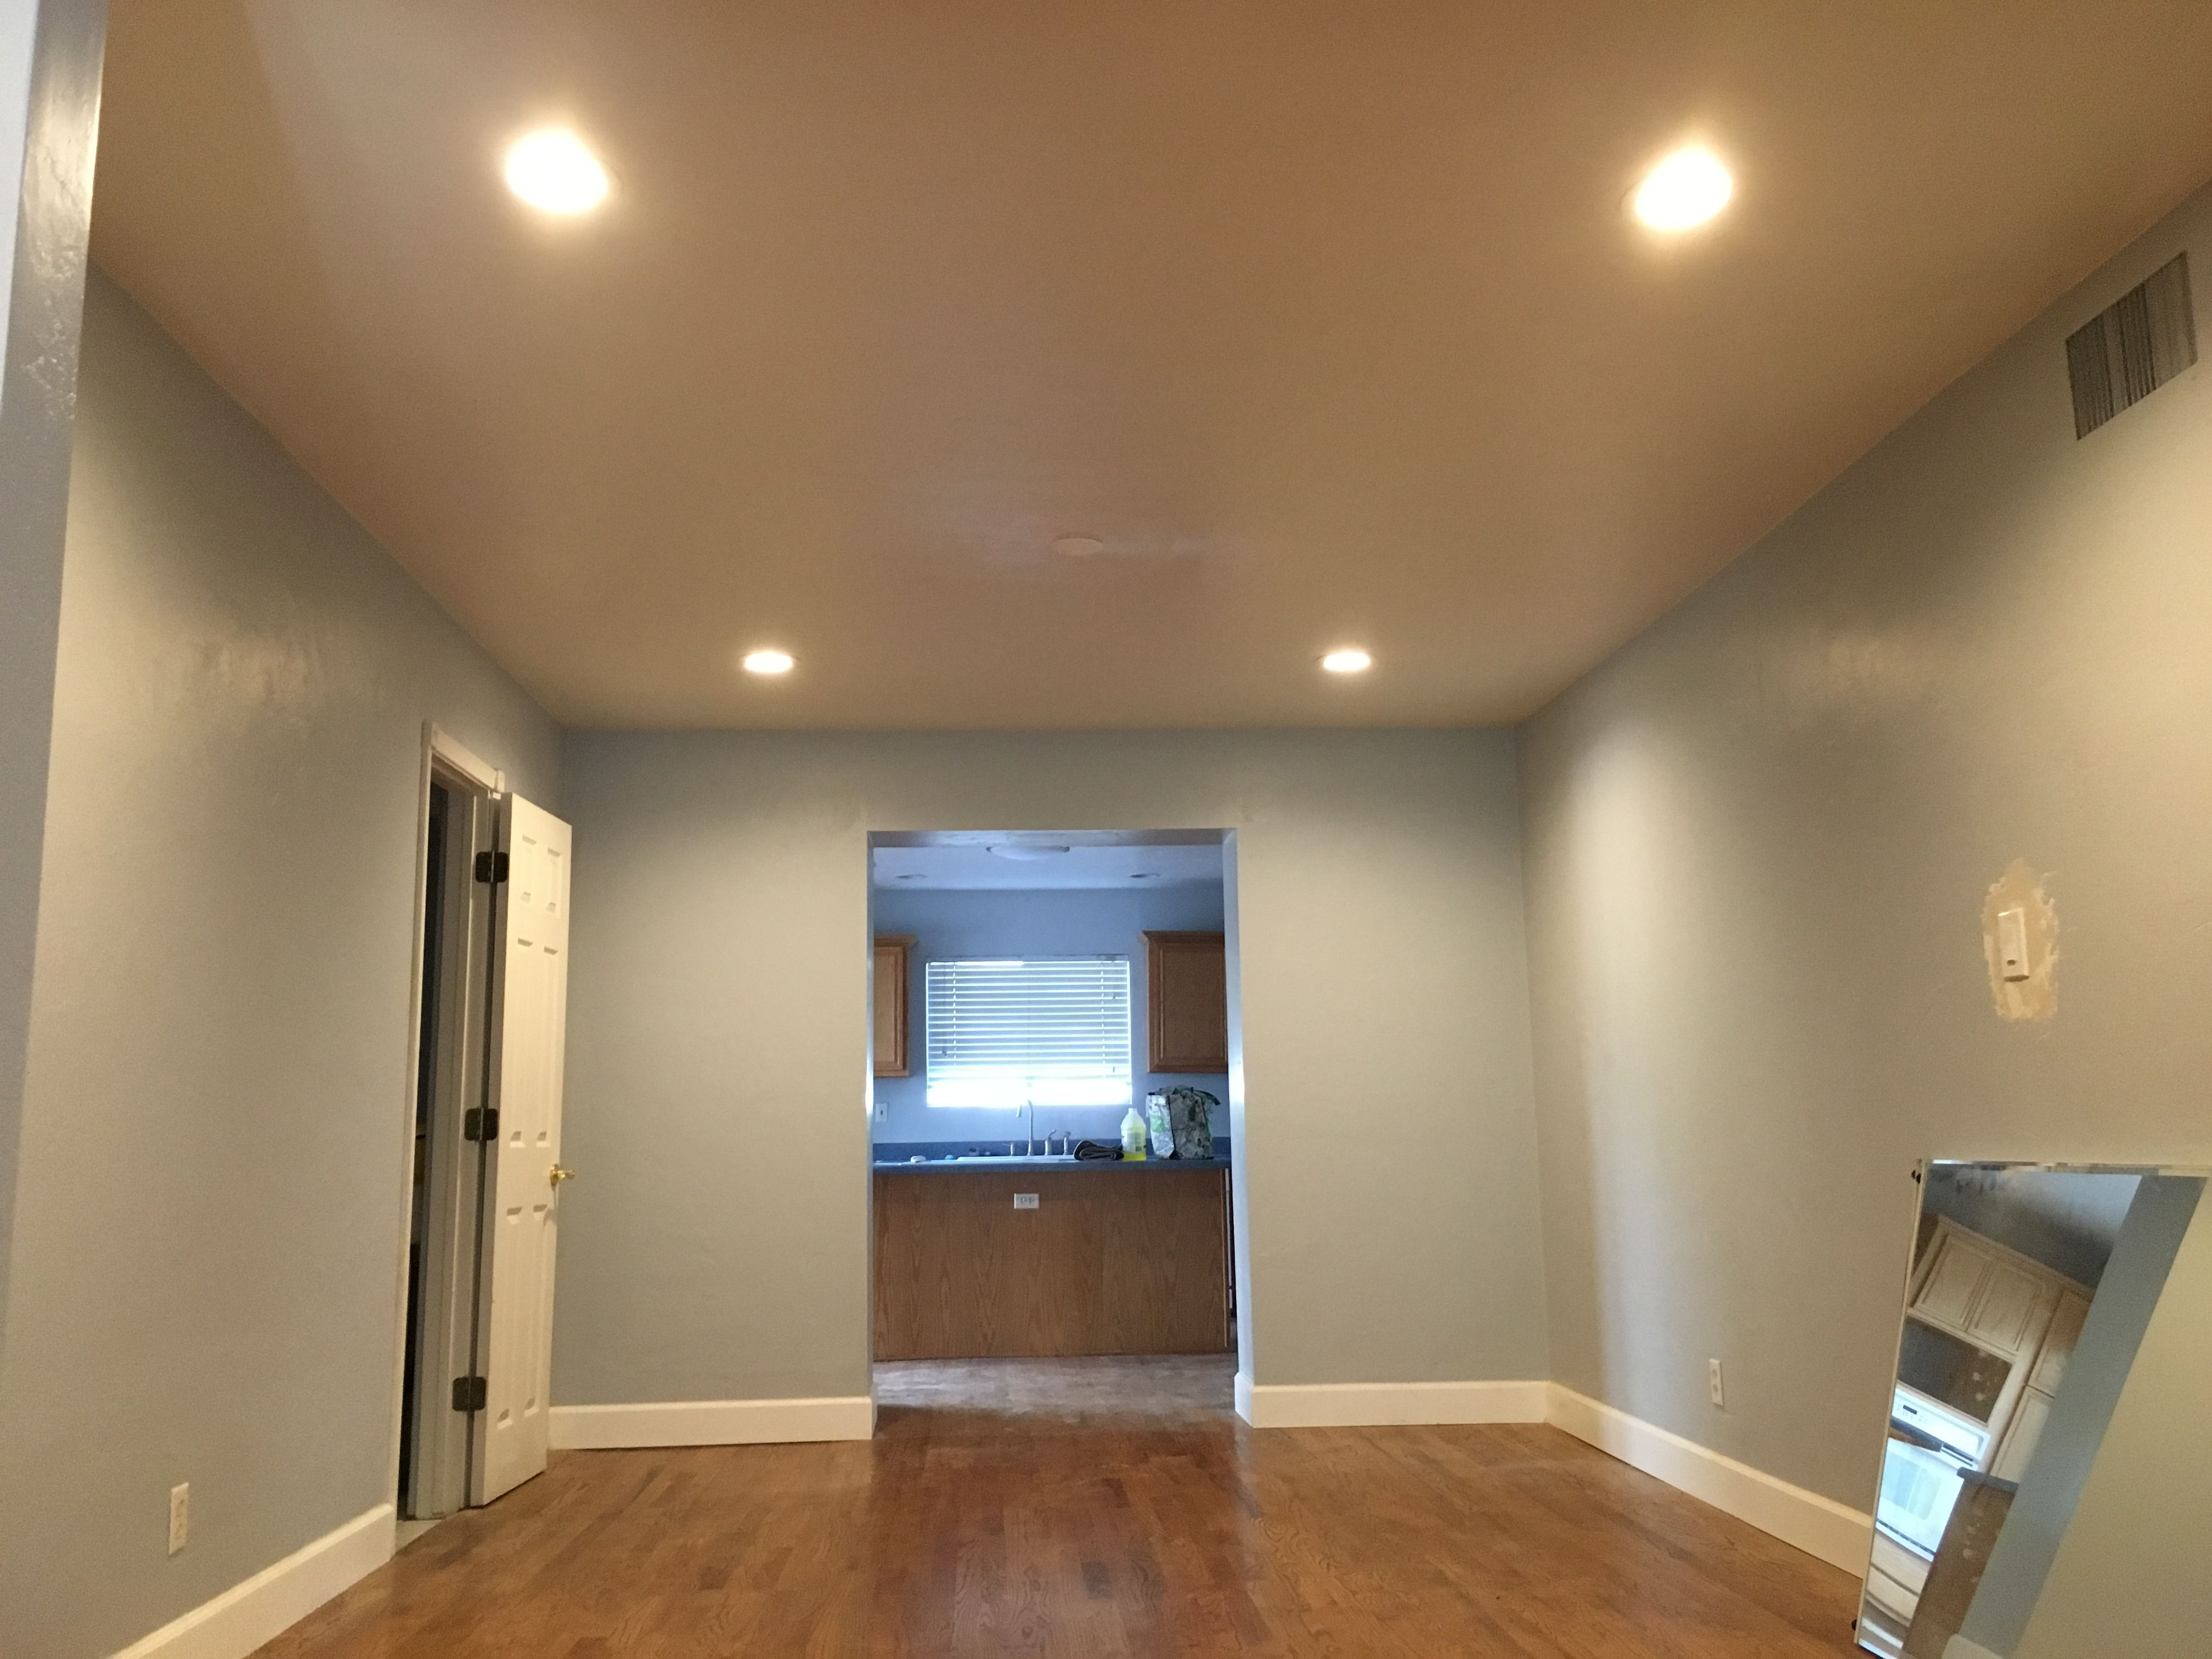 installed 4 x 6 inch recessed lights